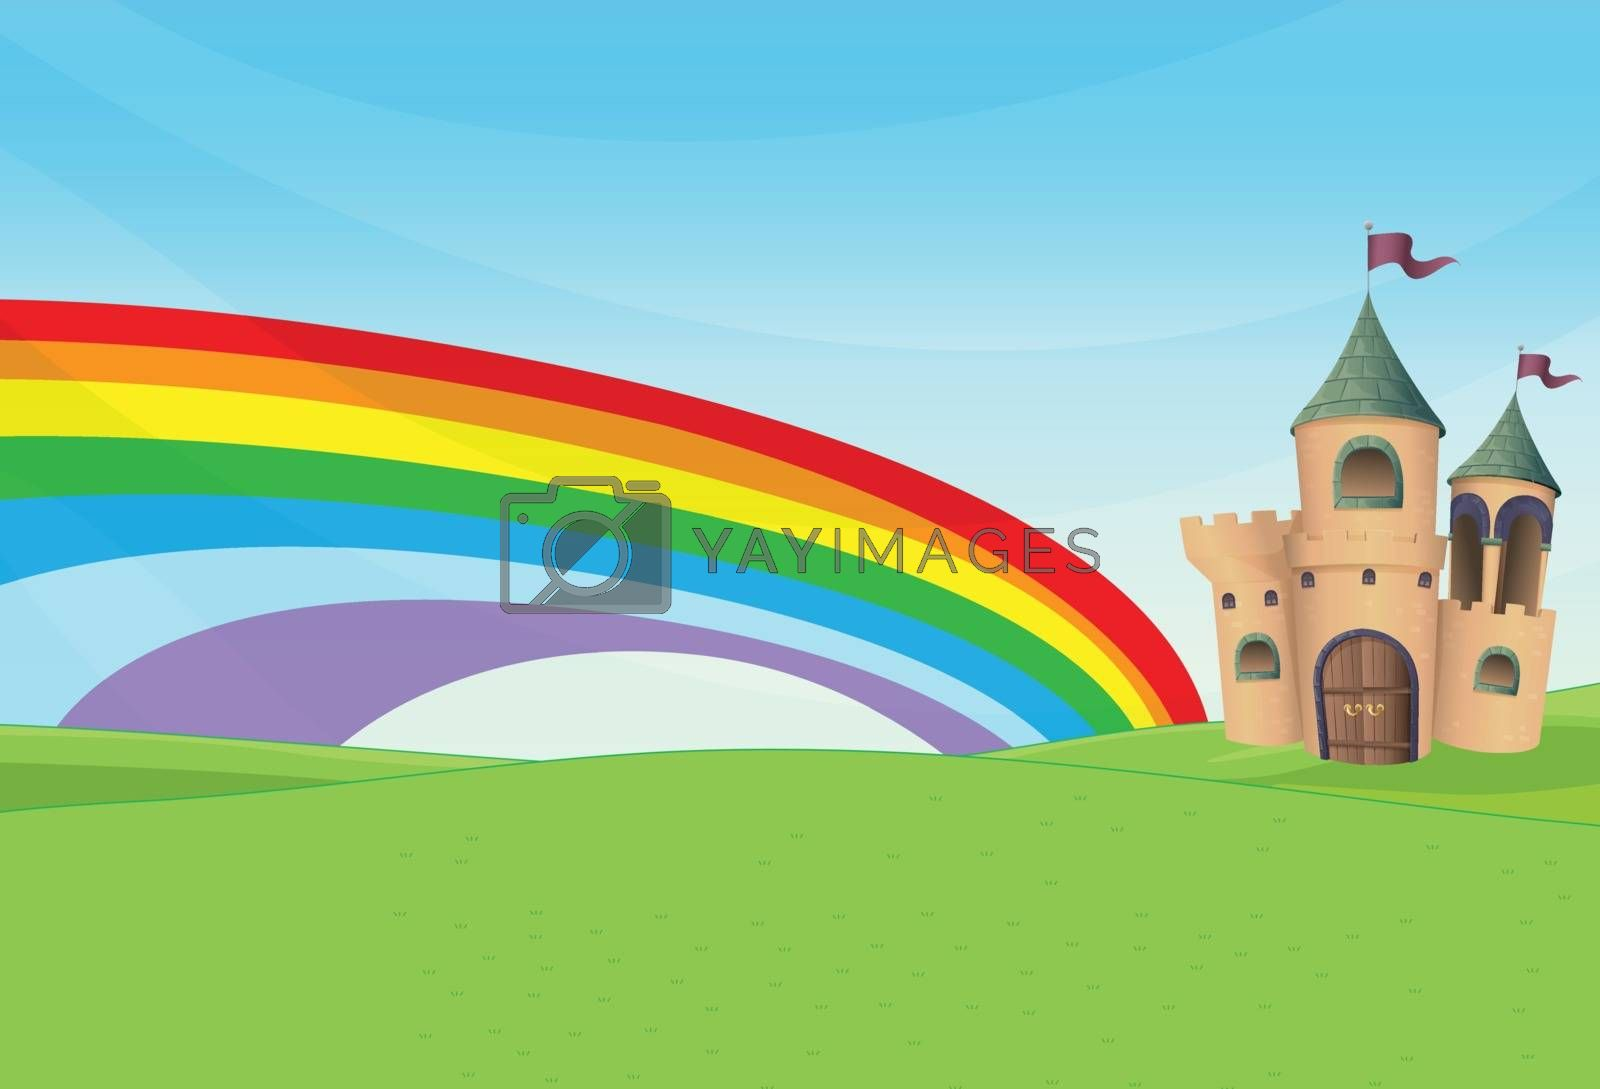 Illustration of a castle and the rainbow